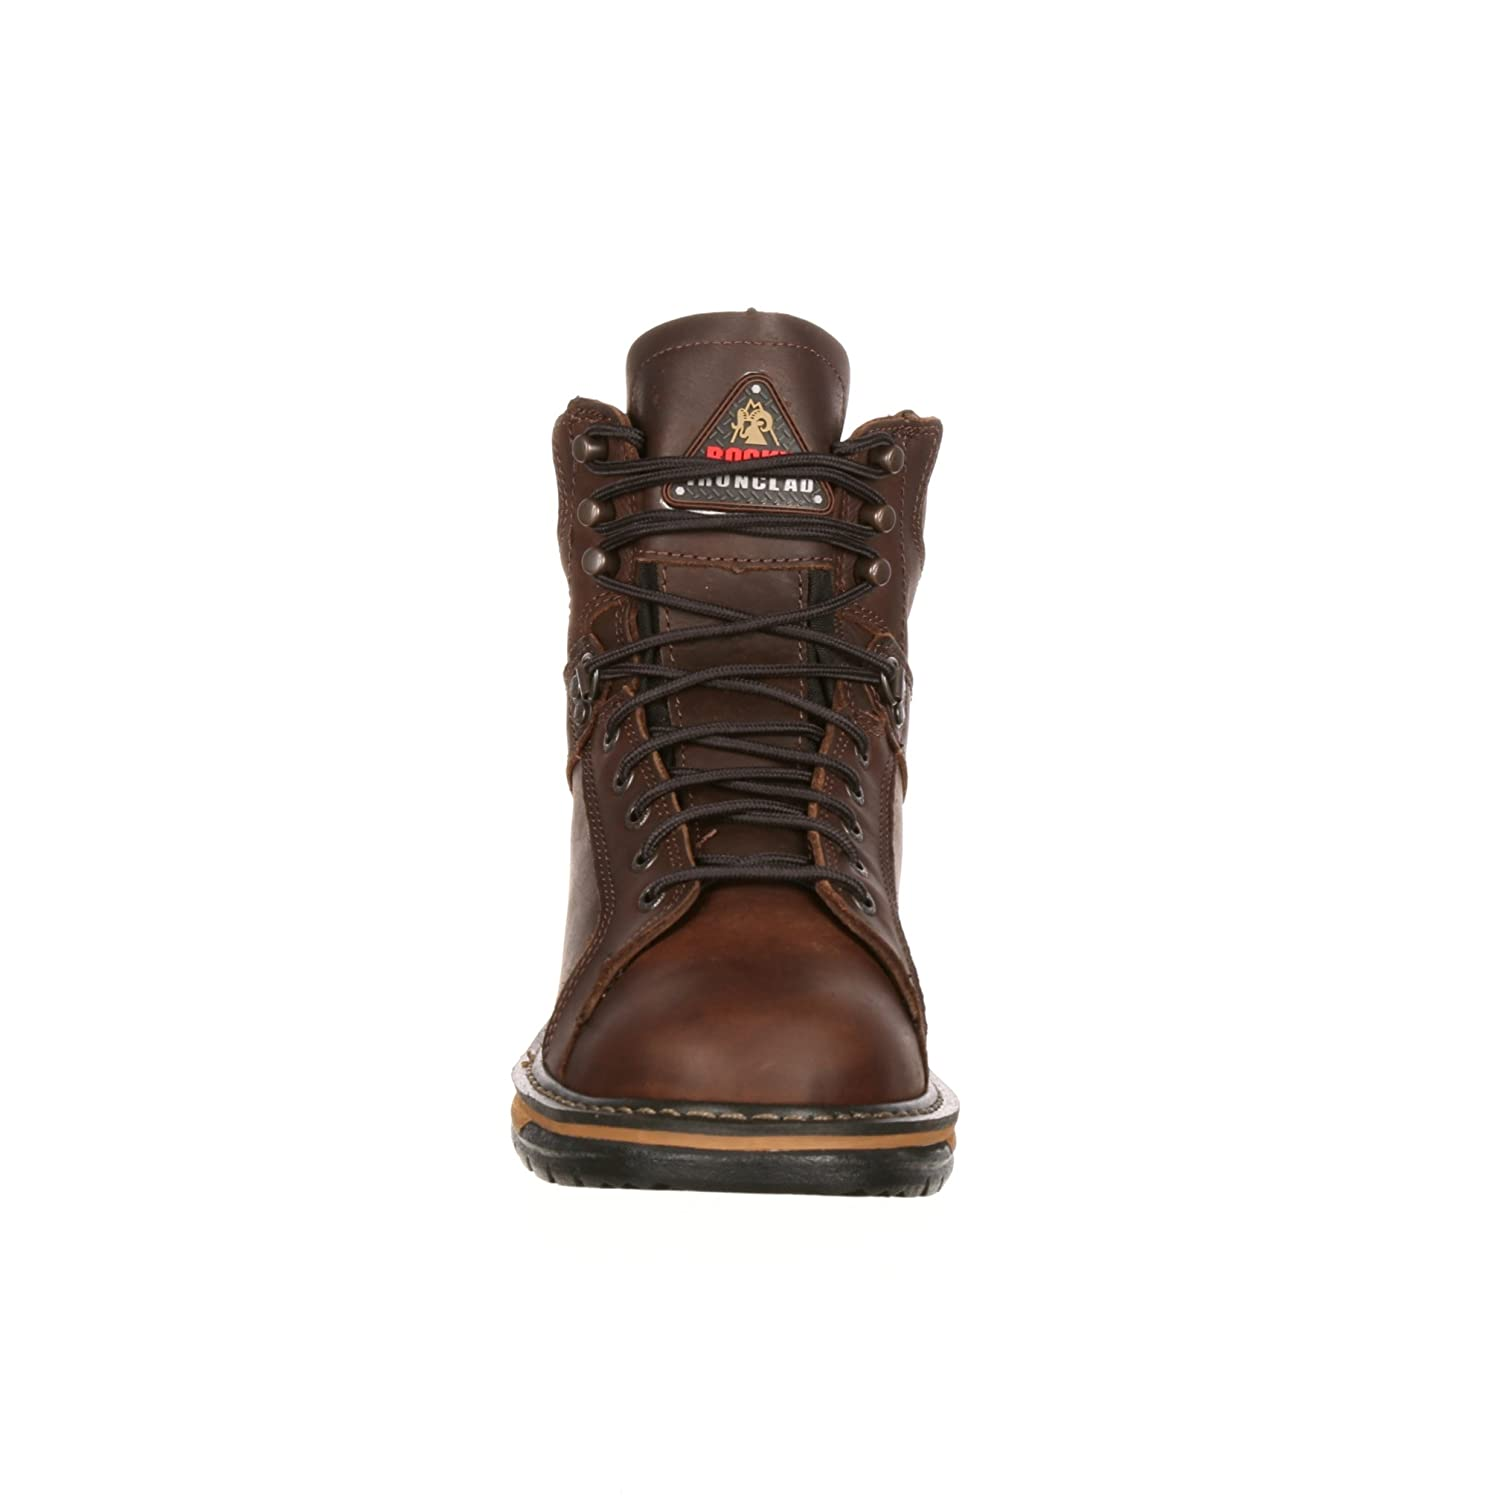 46a750bab80 Amazon.com | ROCKY Men's Iron Clad Waterproof Lace to Toe Work Boot ...